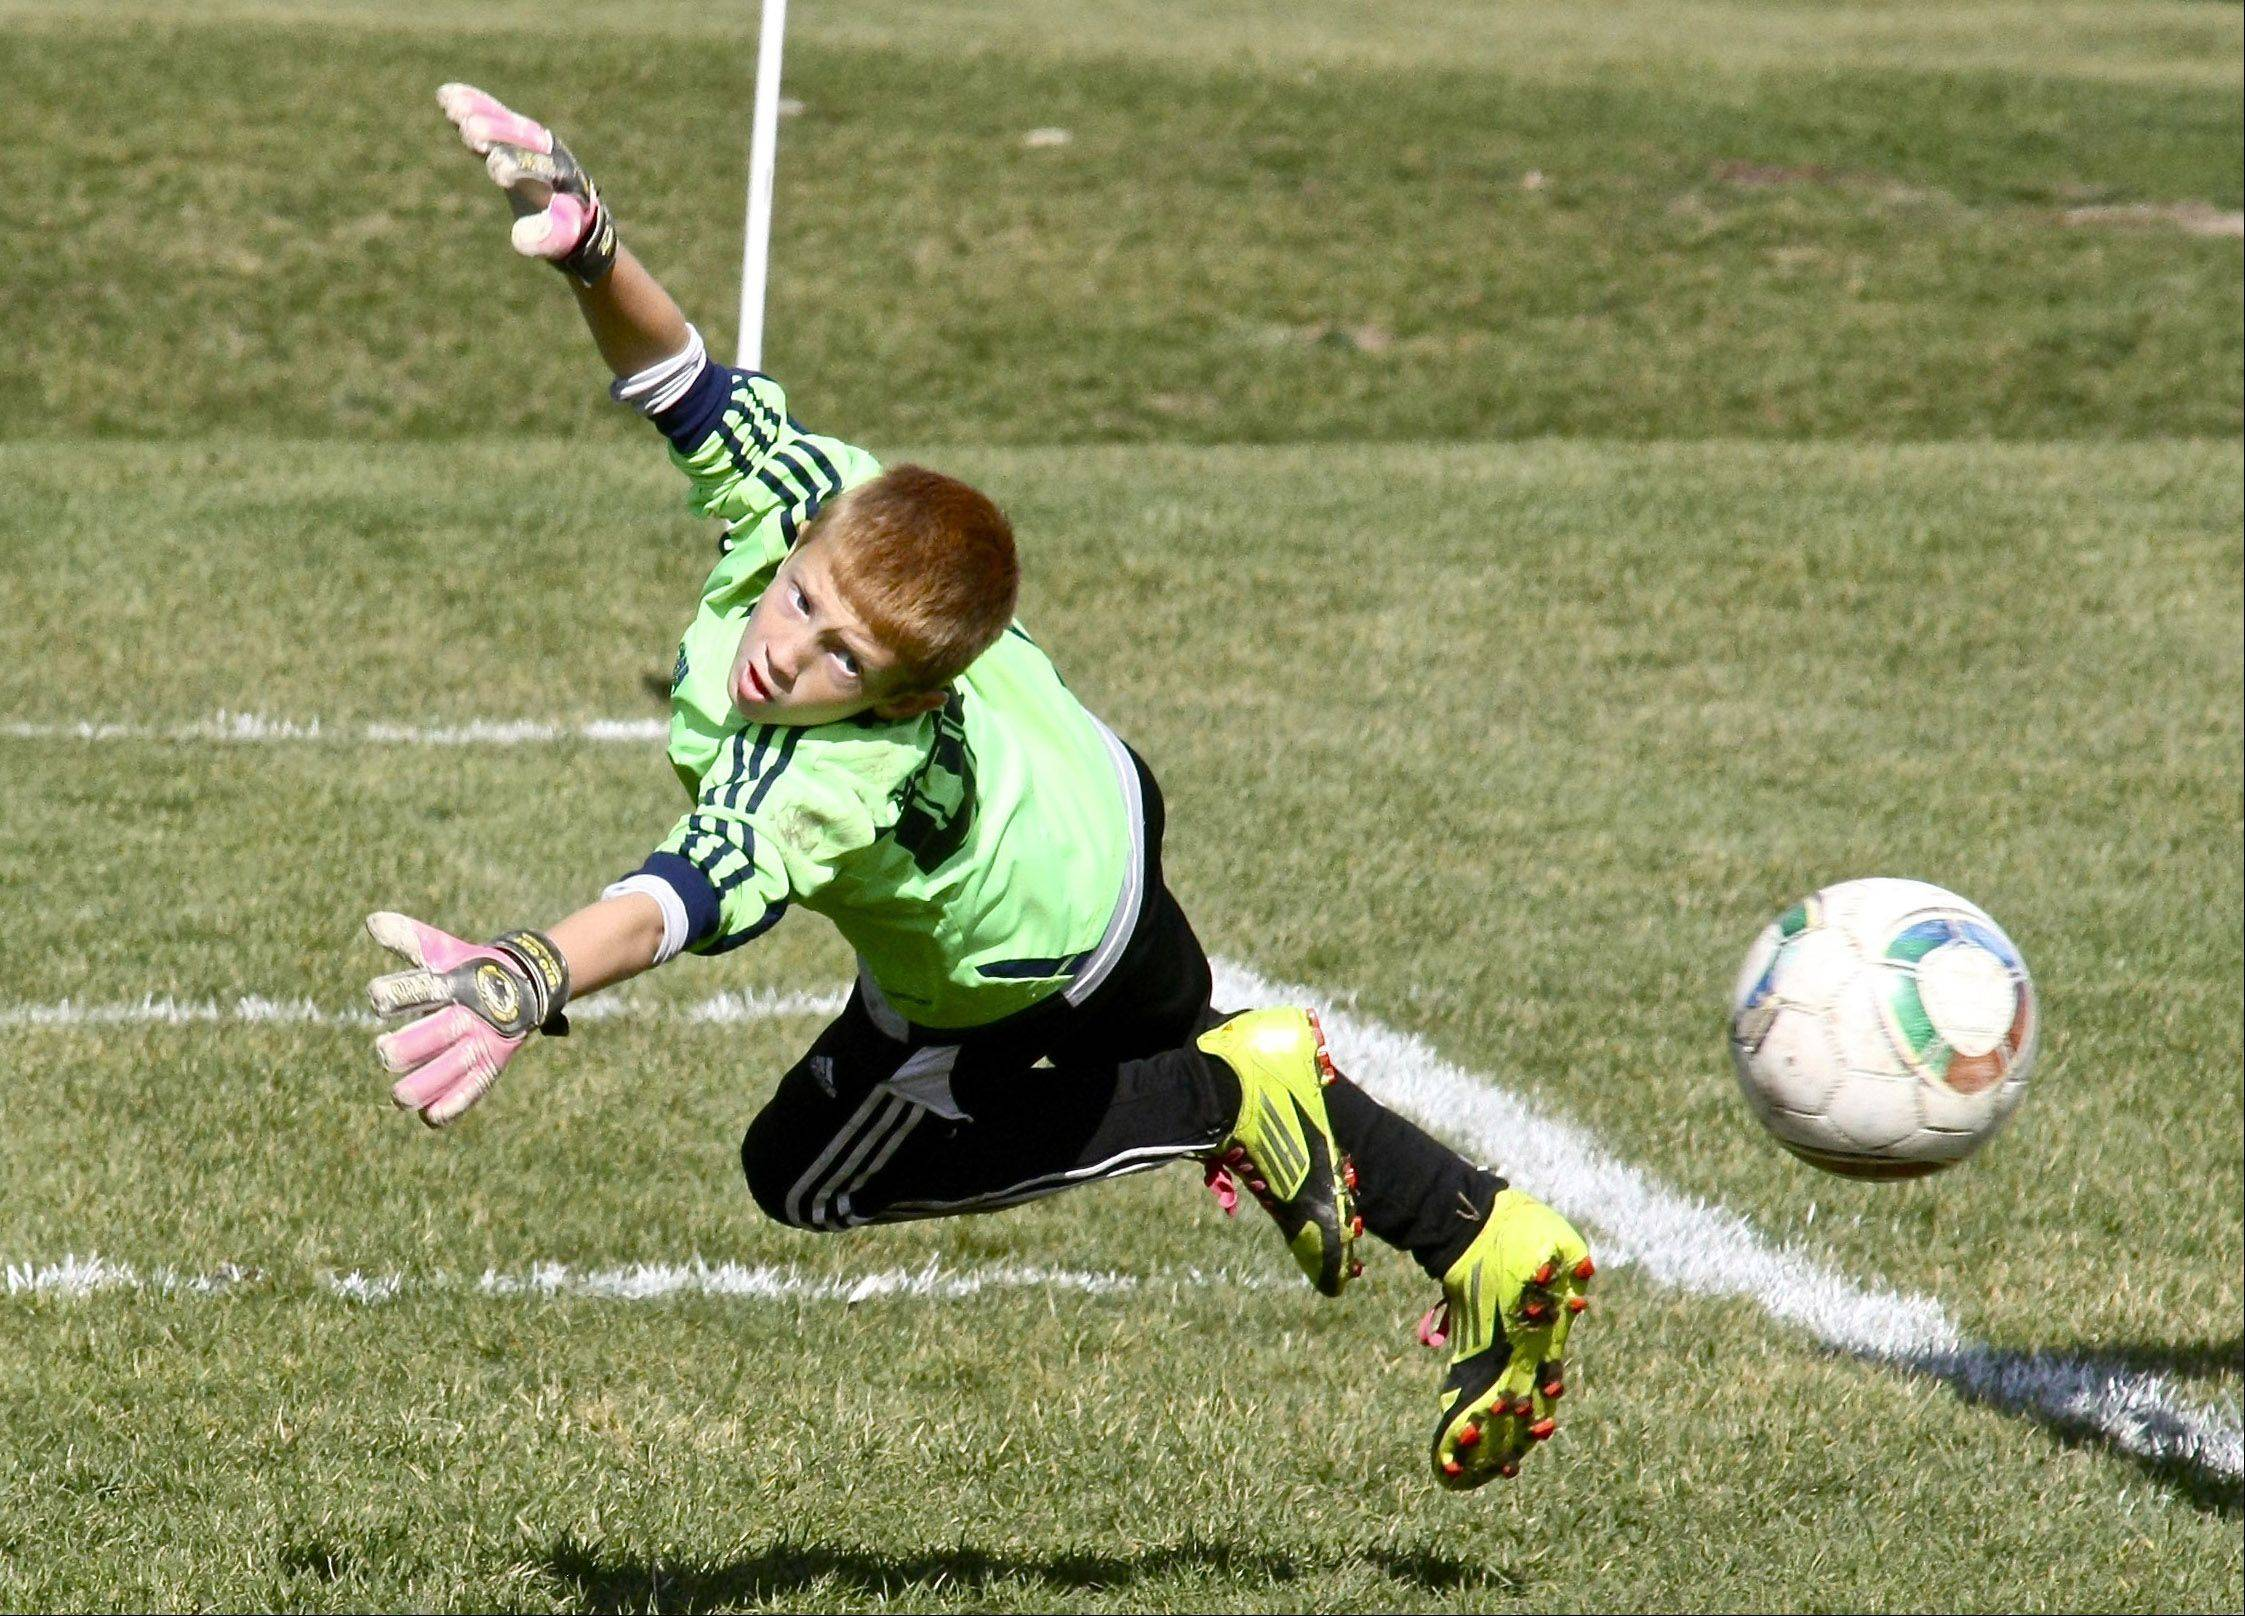 Nine-year-old Trevor Share defies gravity deflecting a soccer ball during a game with the Kickers Soccer League in Elgin.